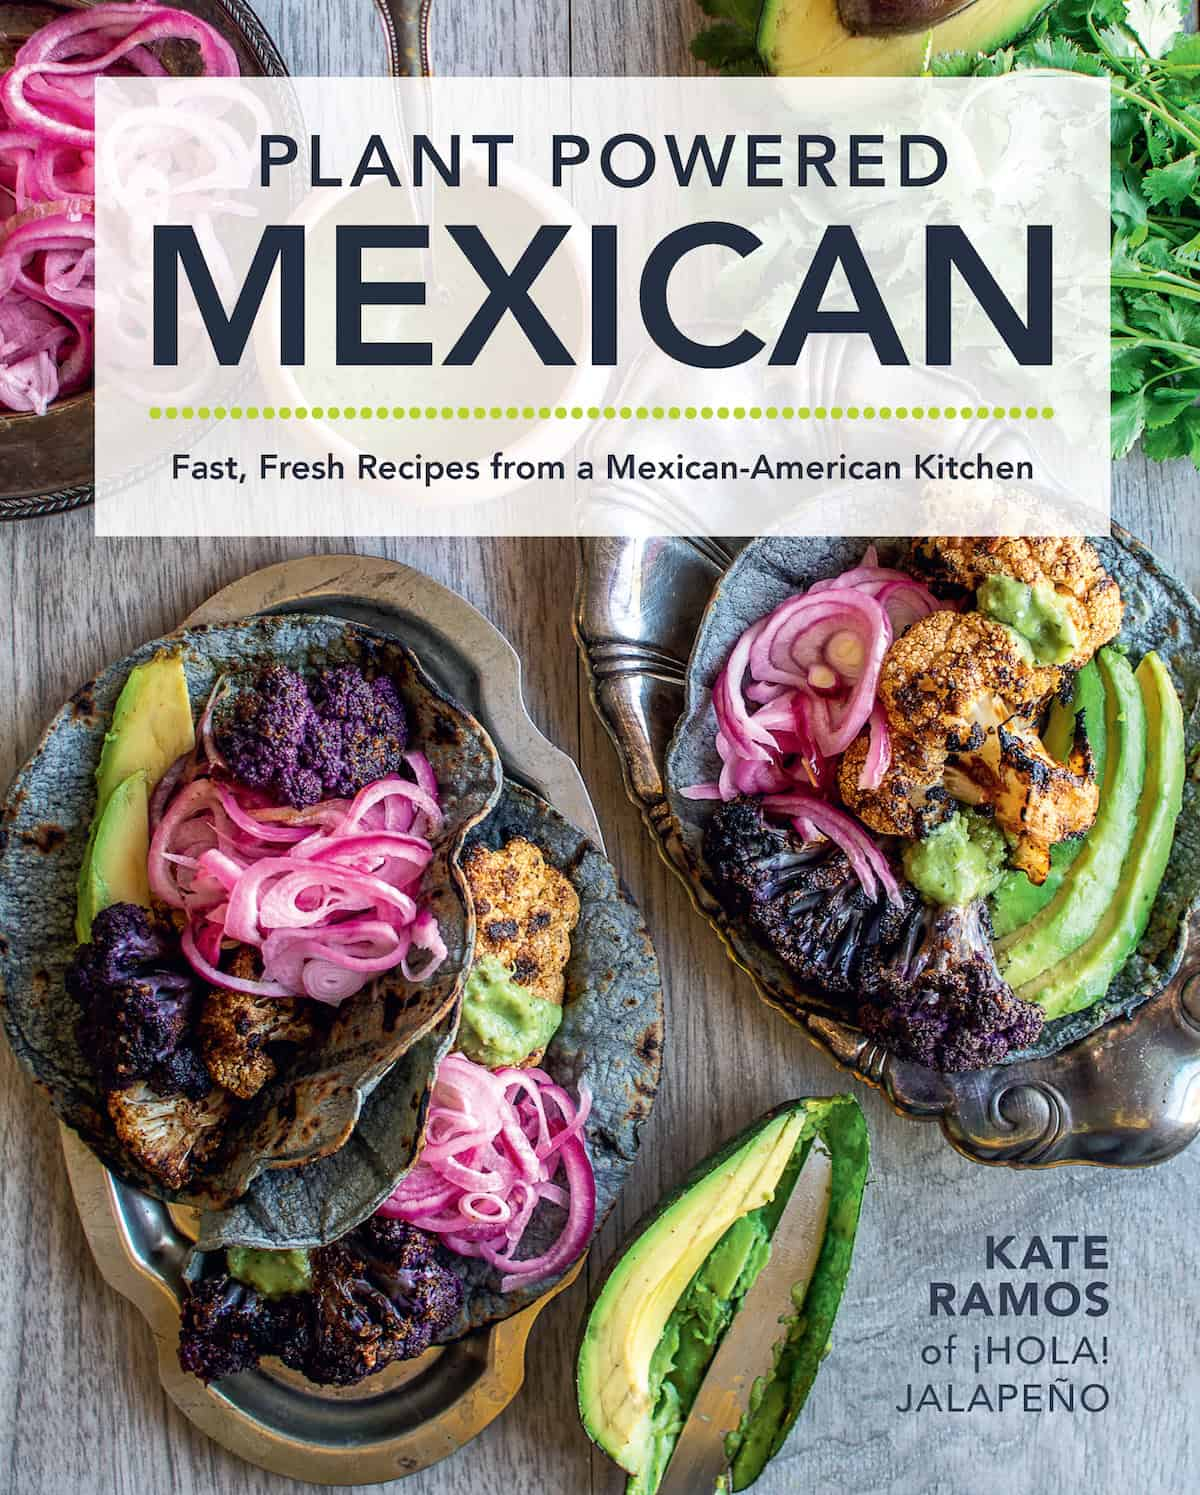 I'm over the moon excited to introduce Plant Powered Mexican, my new vegetarian cookbook that will be released this fall! This book includes over 70 vegetarian dinner recipes made for busy families like yours and mine each one full of fresh, vibrant Mexican flavors. I just know you are going to love it! #plantpoweredmexican #vegetariancookbook #vegetarianrecipes #mexicancookbook